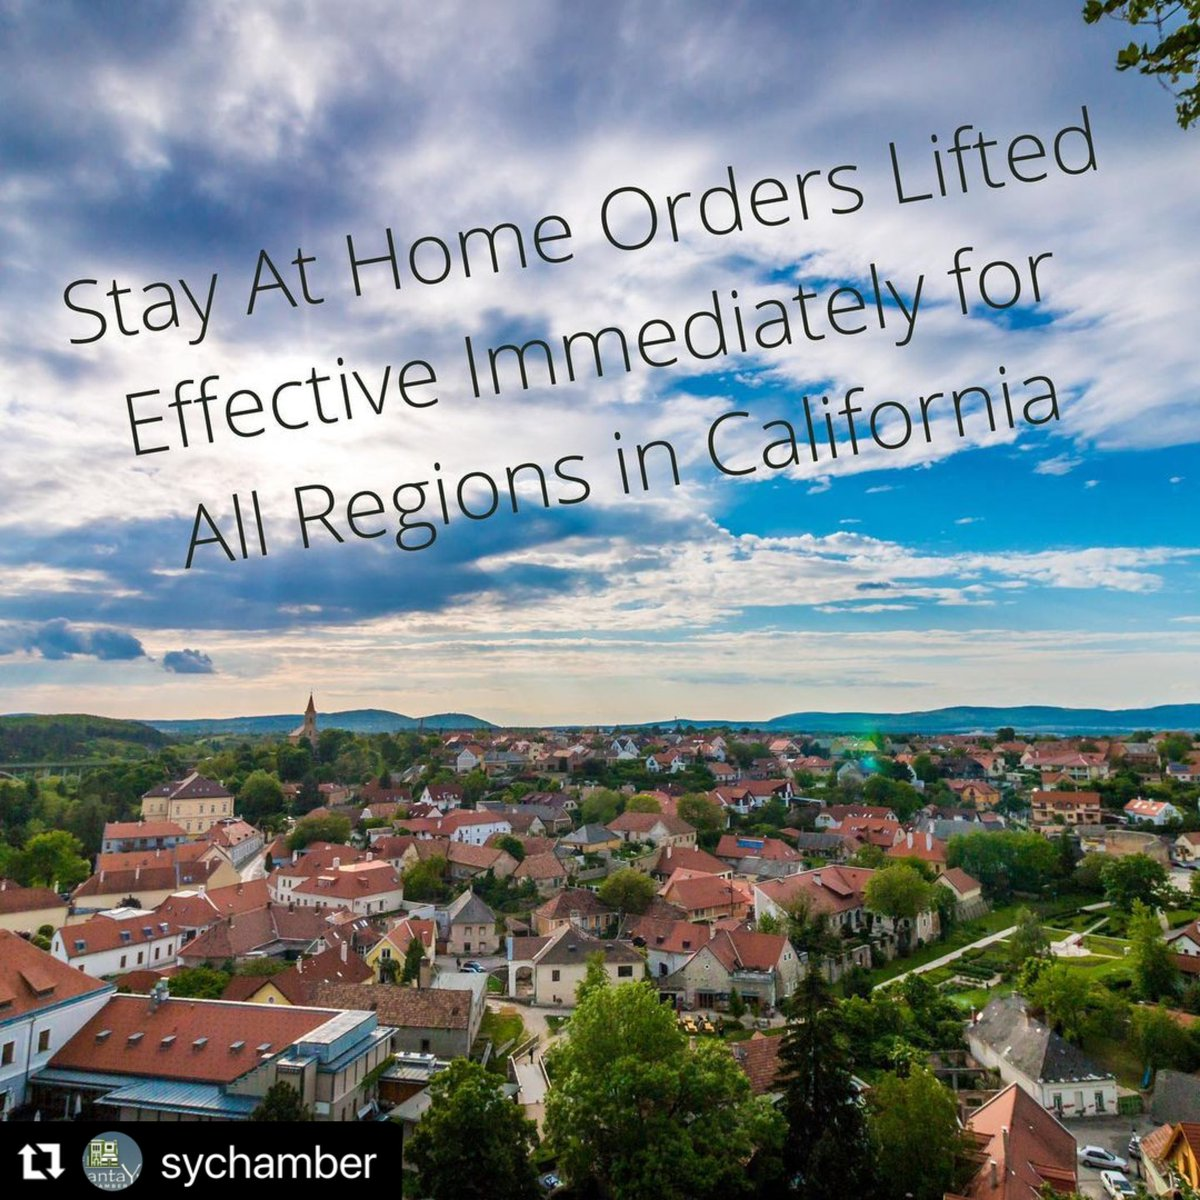 California Stay at Home Orders lifted! 🙌🏼 ・・・ Yes the California Department of Public Health officials lifted the Stay at Home Order for all regions in California today. This would also sunset the 10 pm - 5 am curfew that has been in place.   #Repost @SYnezChamber